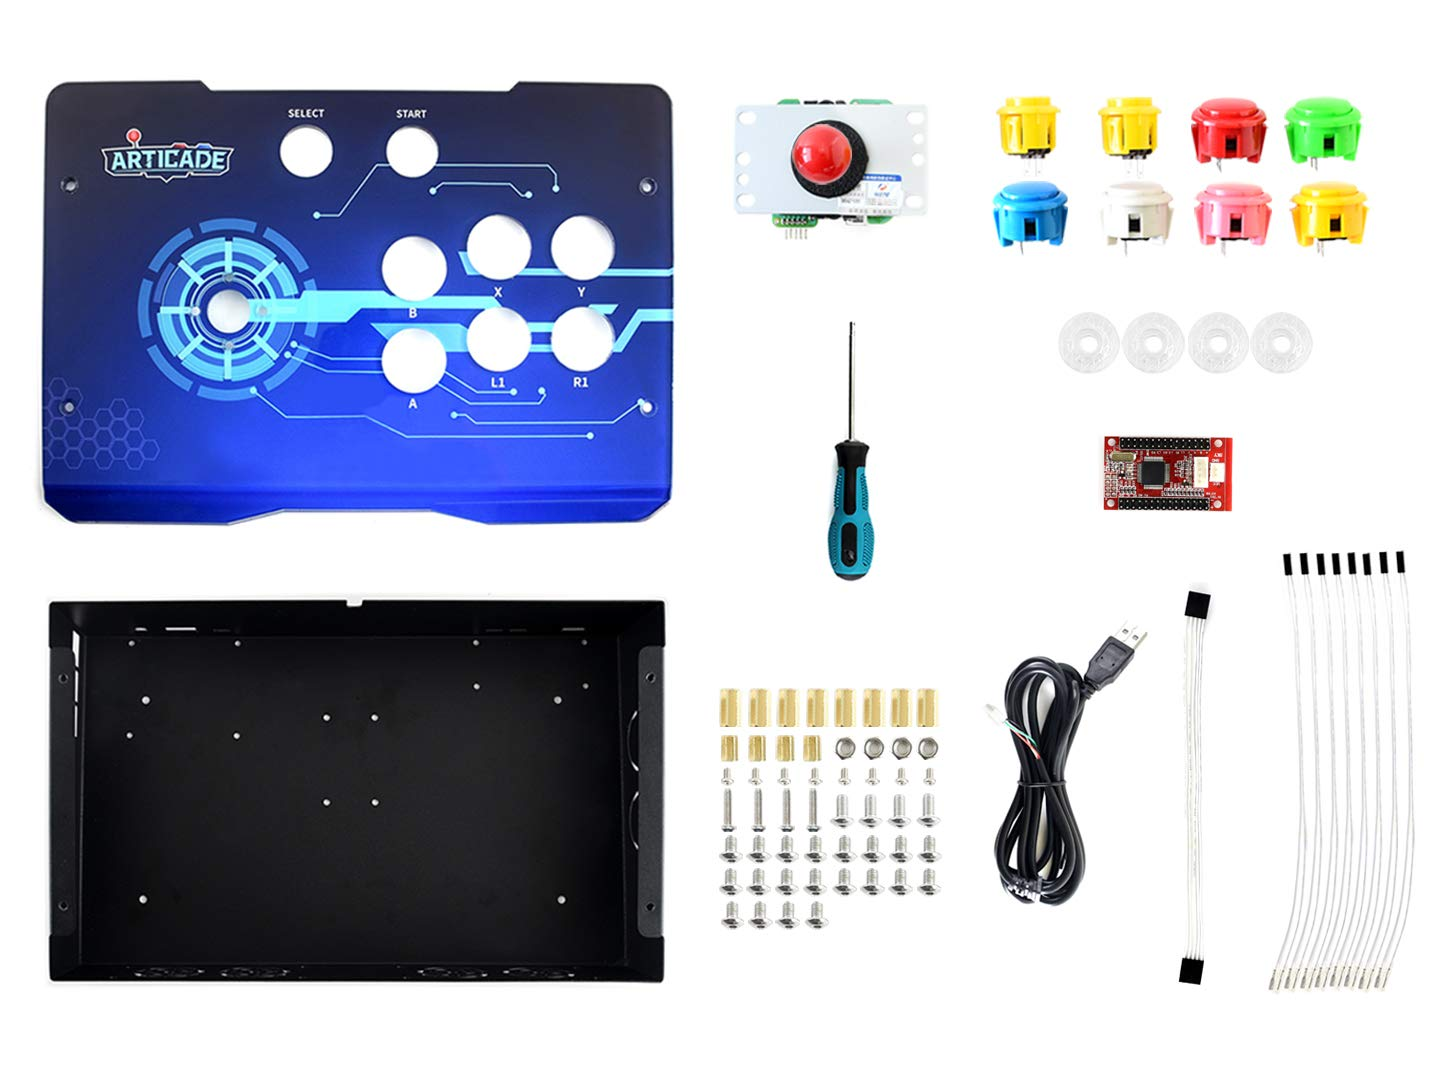 Waveshare Arcade-D-1P USB Arcade Control Box Provides Classic Joystick and Colorful Buttons Multiple Platform Compatibility Driver Free Plug and Play Supports Raspberry Pi PC Tablet Smart TV.